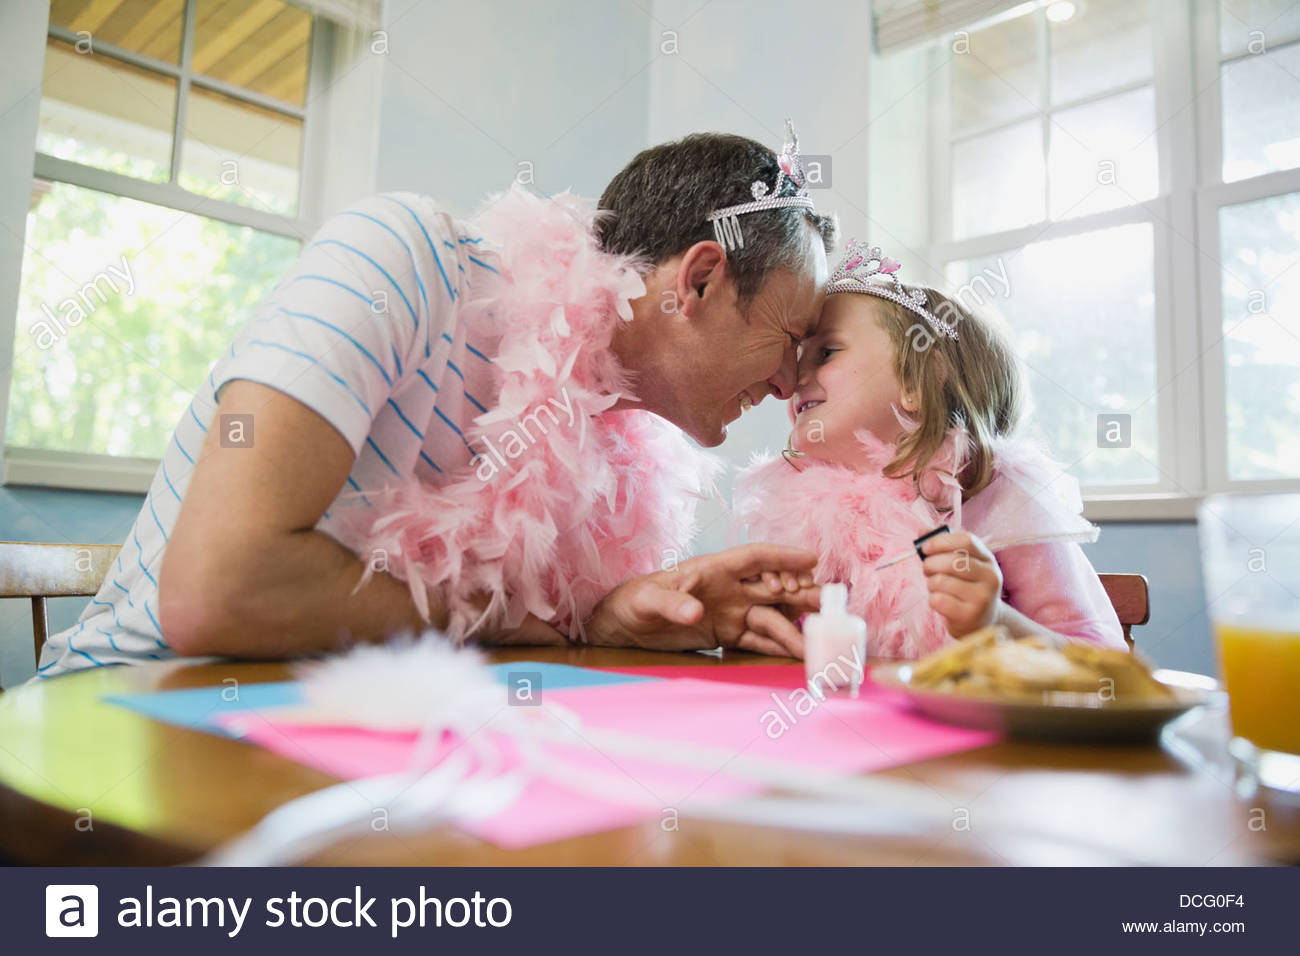 Little girl and father giving nose kisses - Stock Image